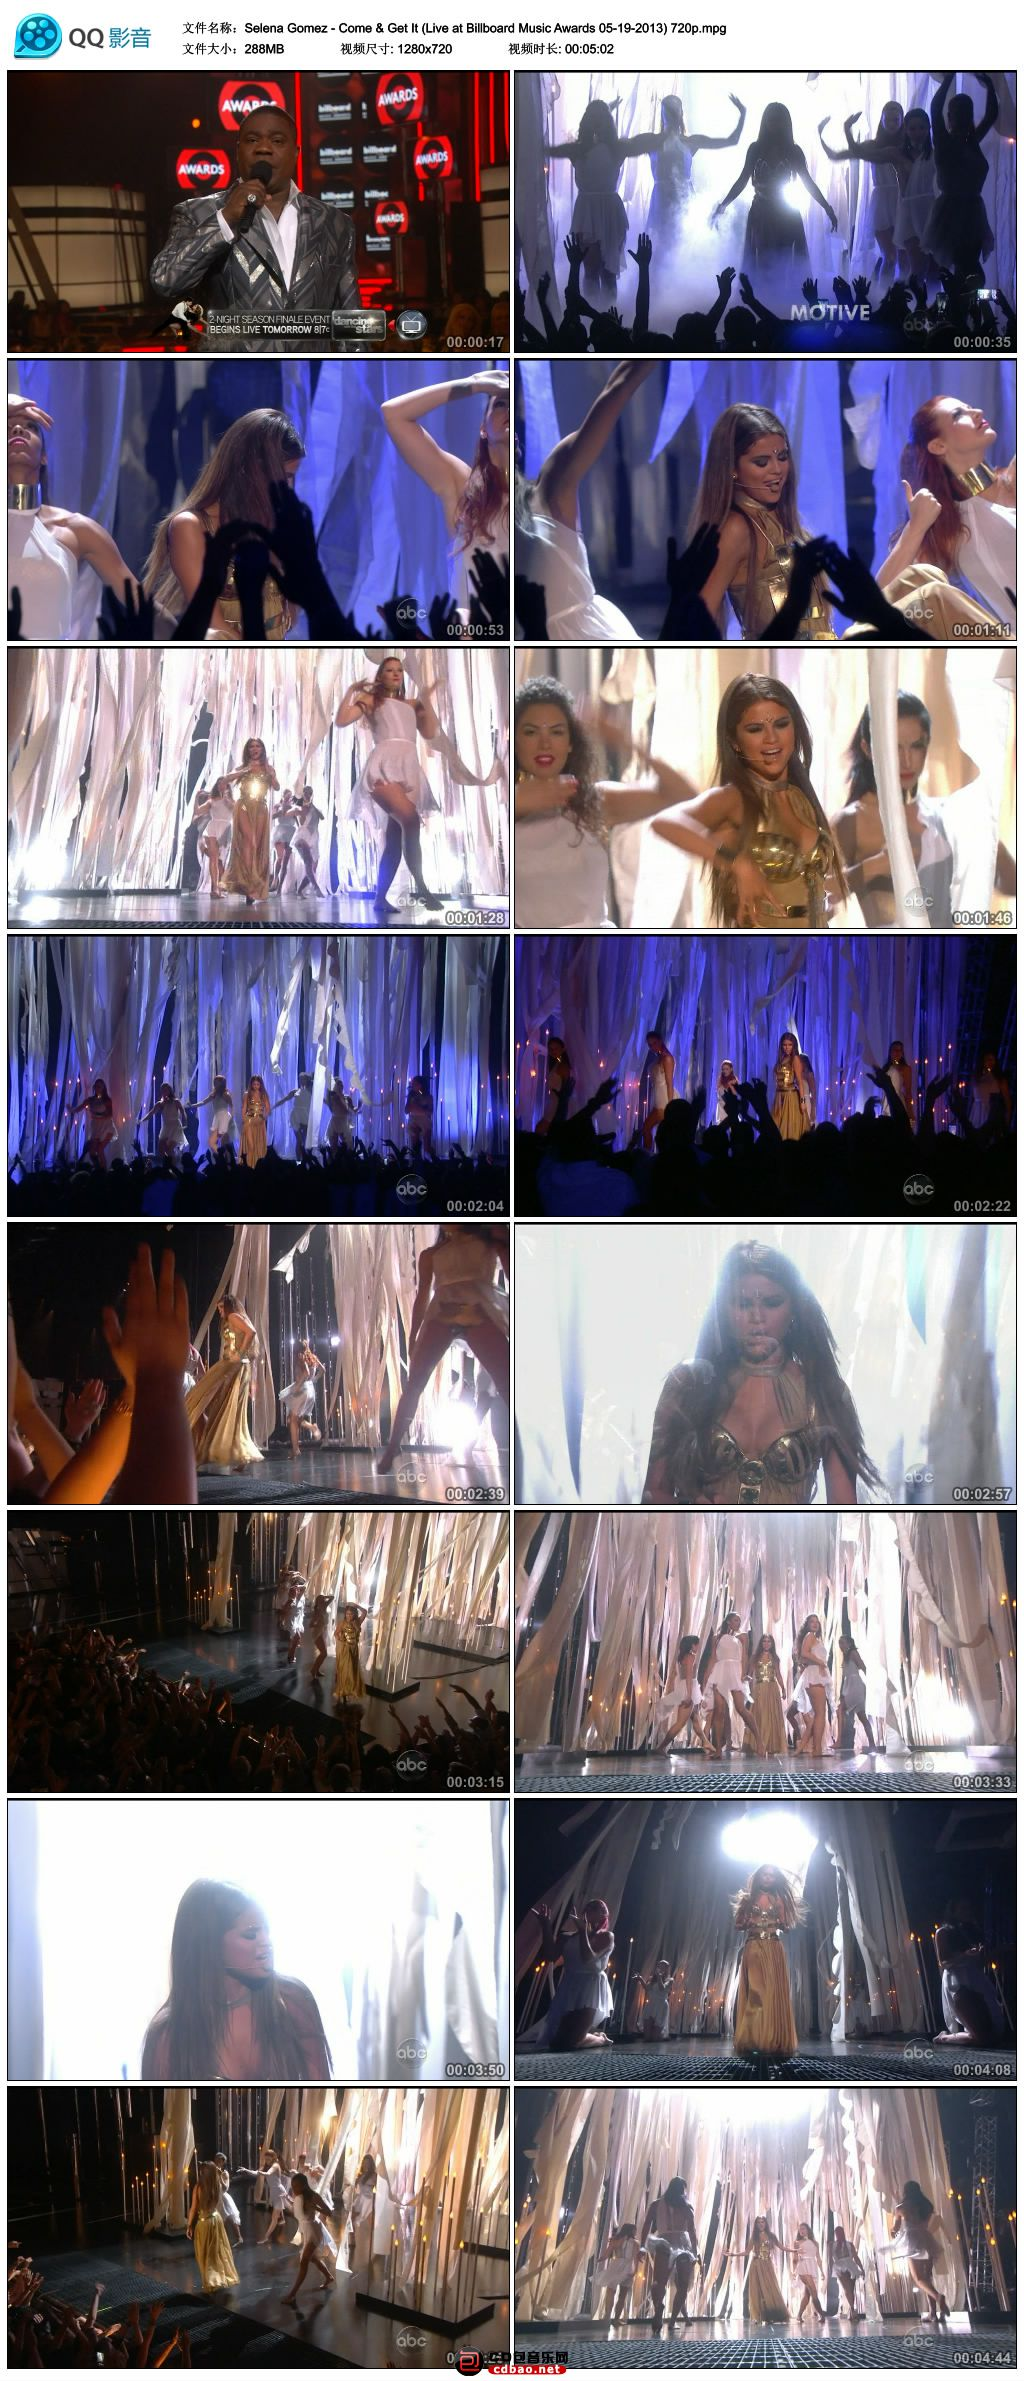 Selena Gomez - Come & Get It (Live at Billboard Music Awards 05-19-2013) 720p.mp.jpg